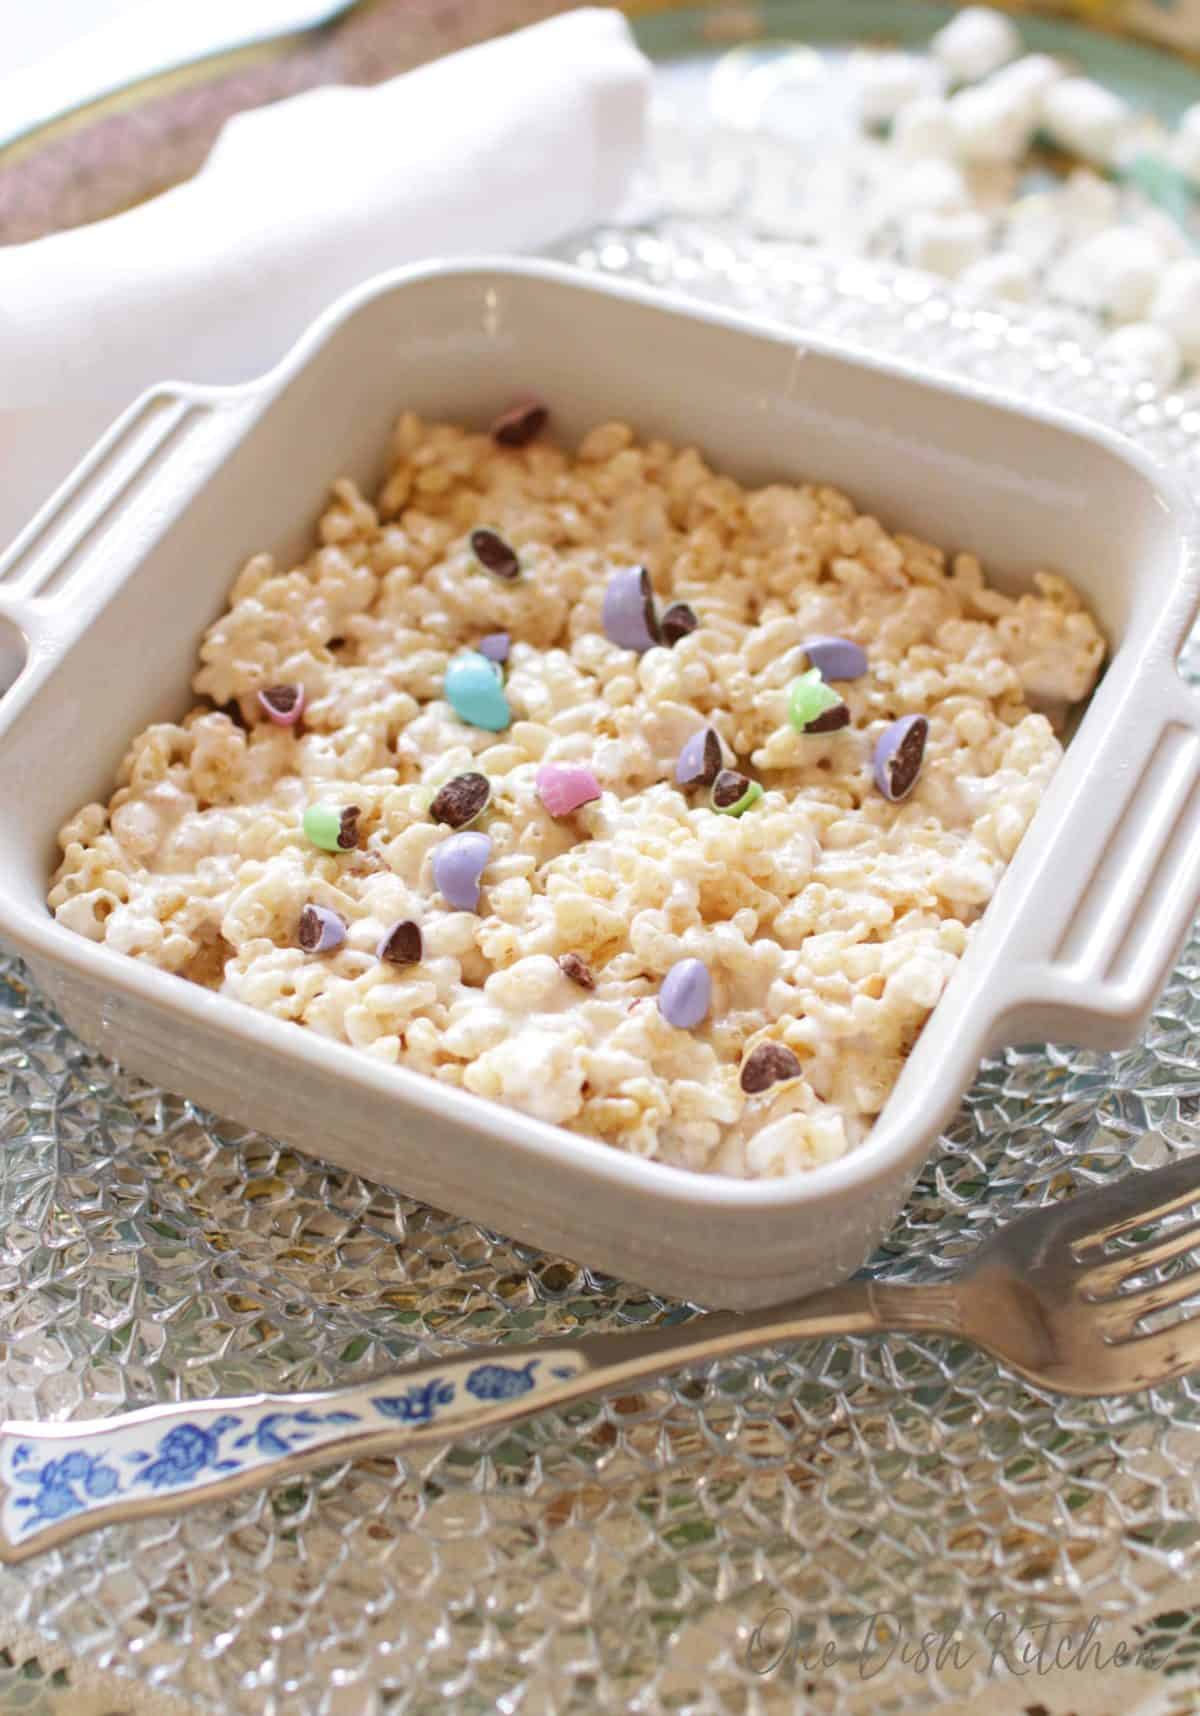 A giant rice krispies treat topped with pastel colored chocolate candies in a small baking dish next to a fork